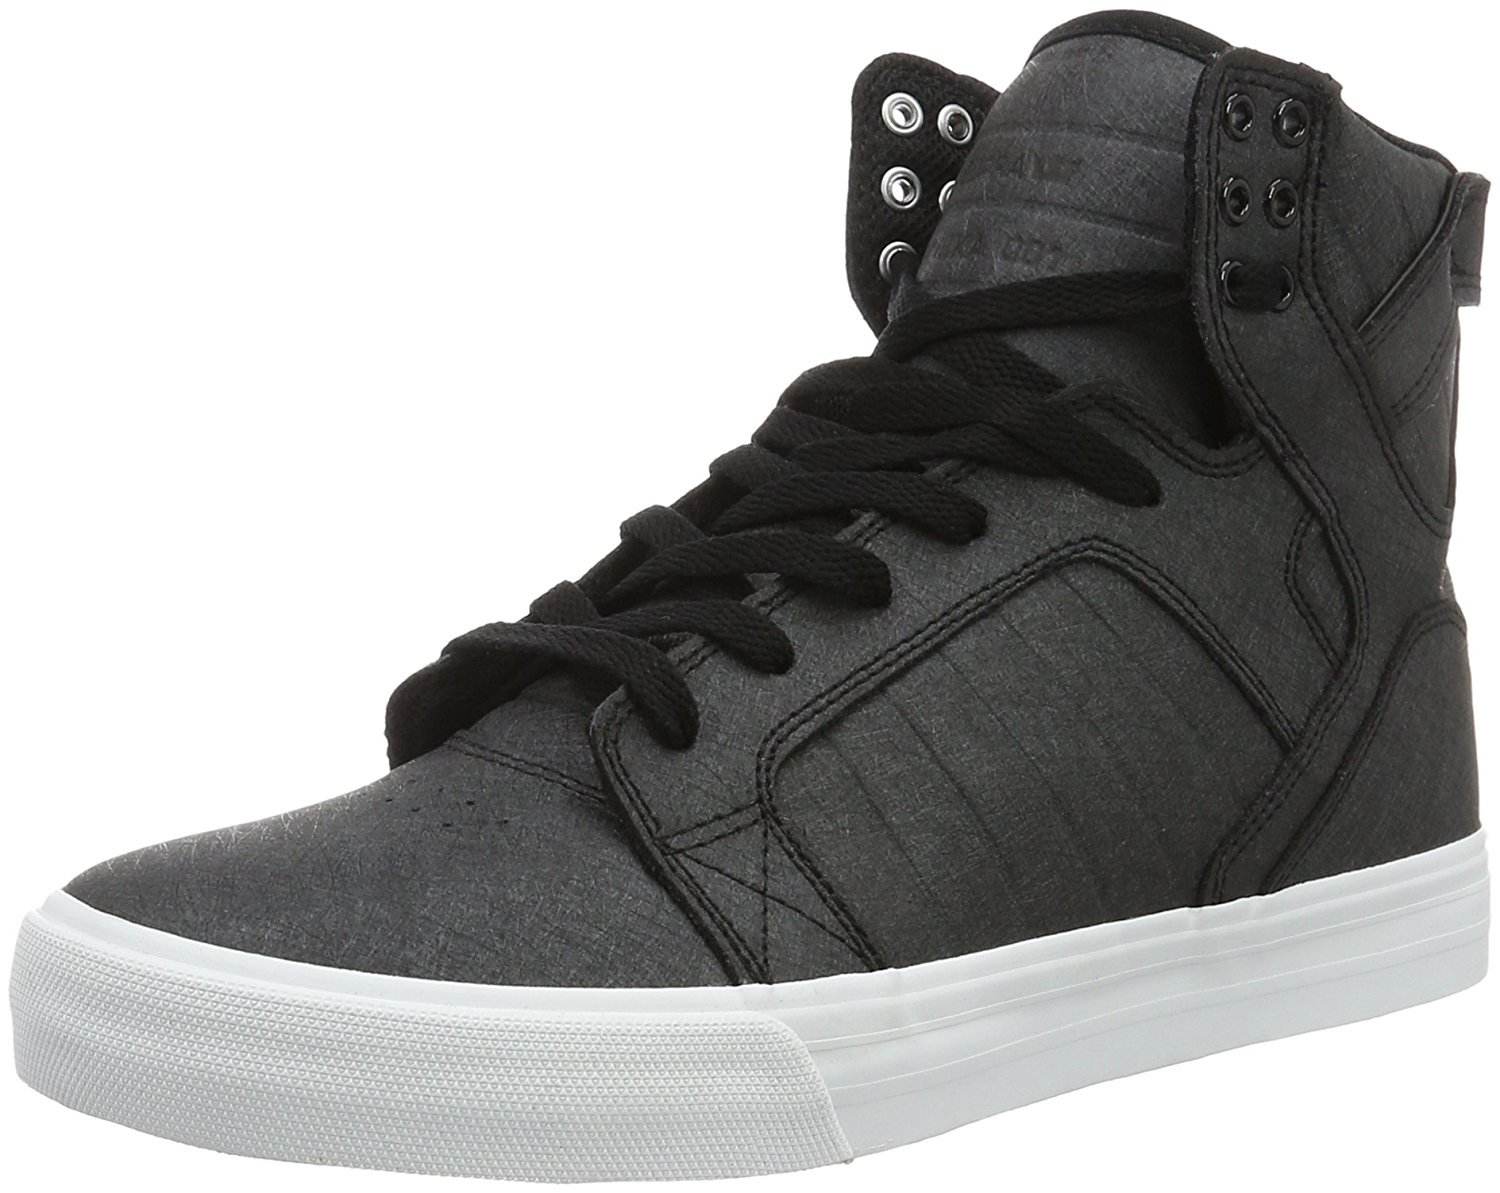 Supra Men's Skytop Black Fiberglass/White Sneaker Men's 9.5, Women's 11 D (M) by Supra